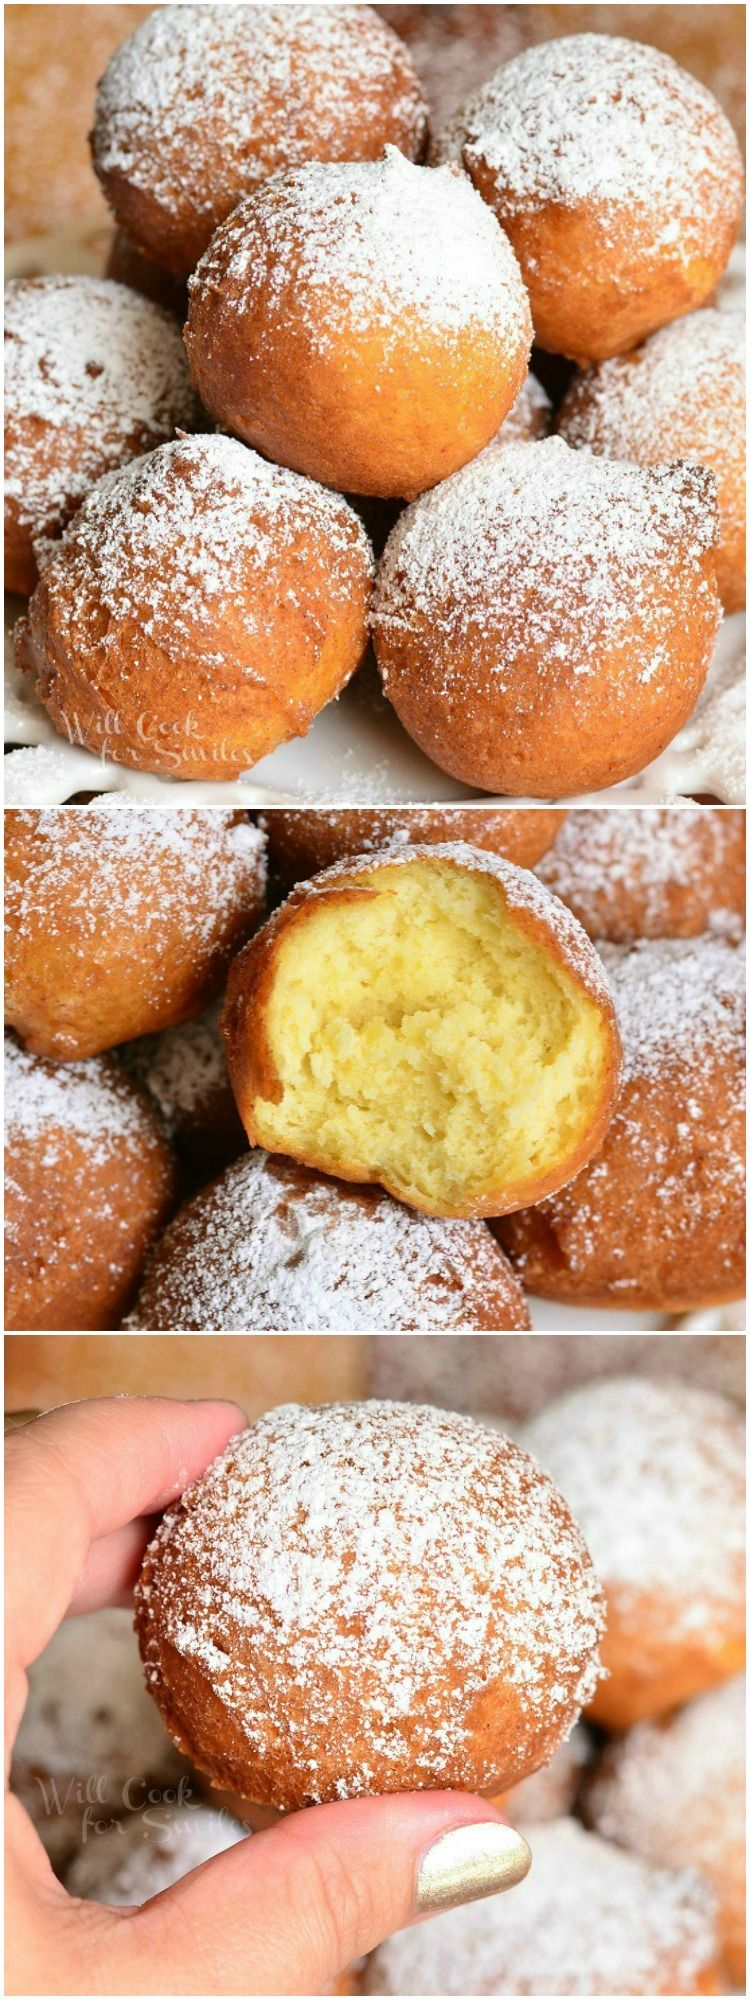 Easy Ricotta Doughnuts Soft And Fluffy Scrumptious Doughnut Holes Made With Ricotta Cheese